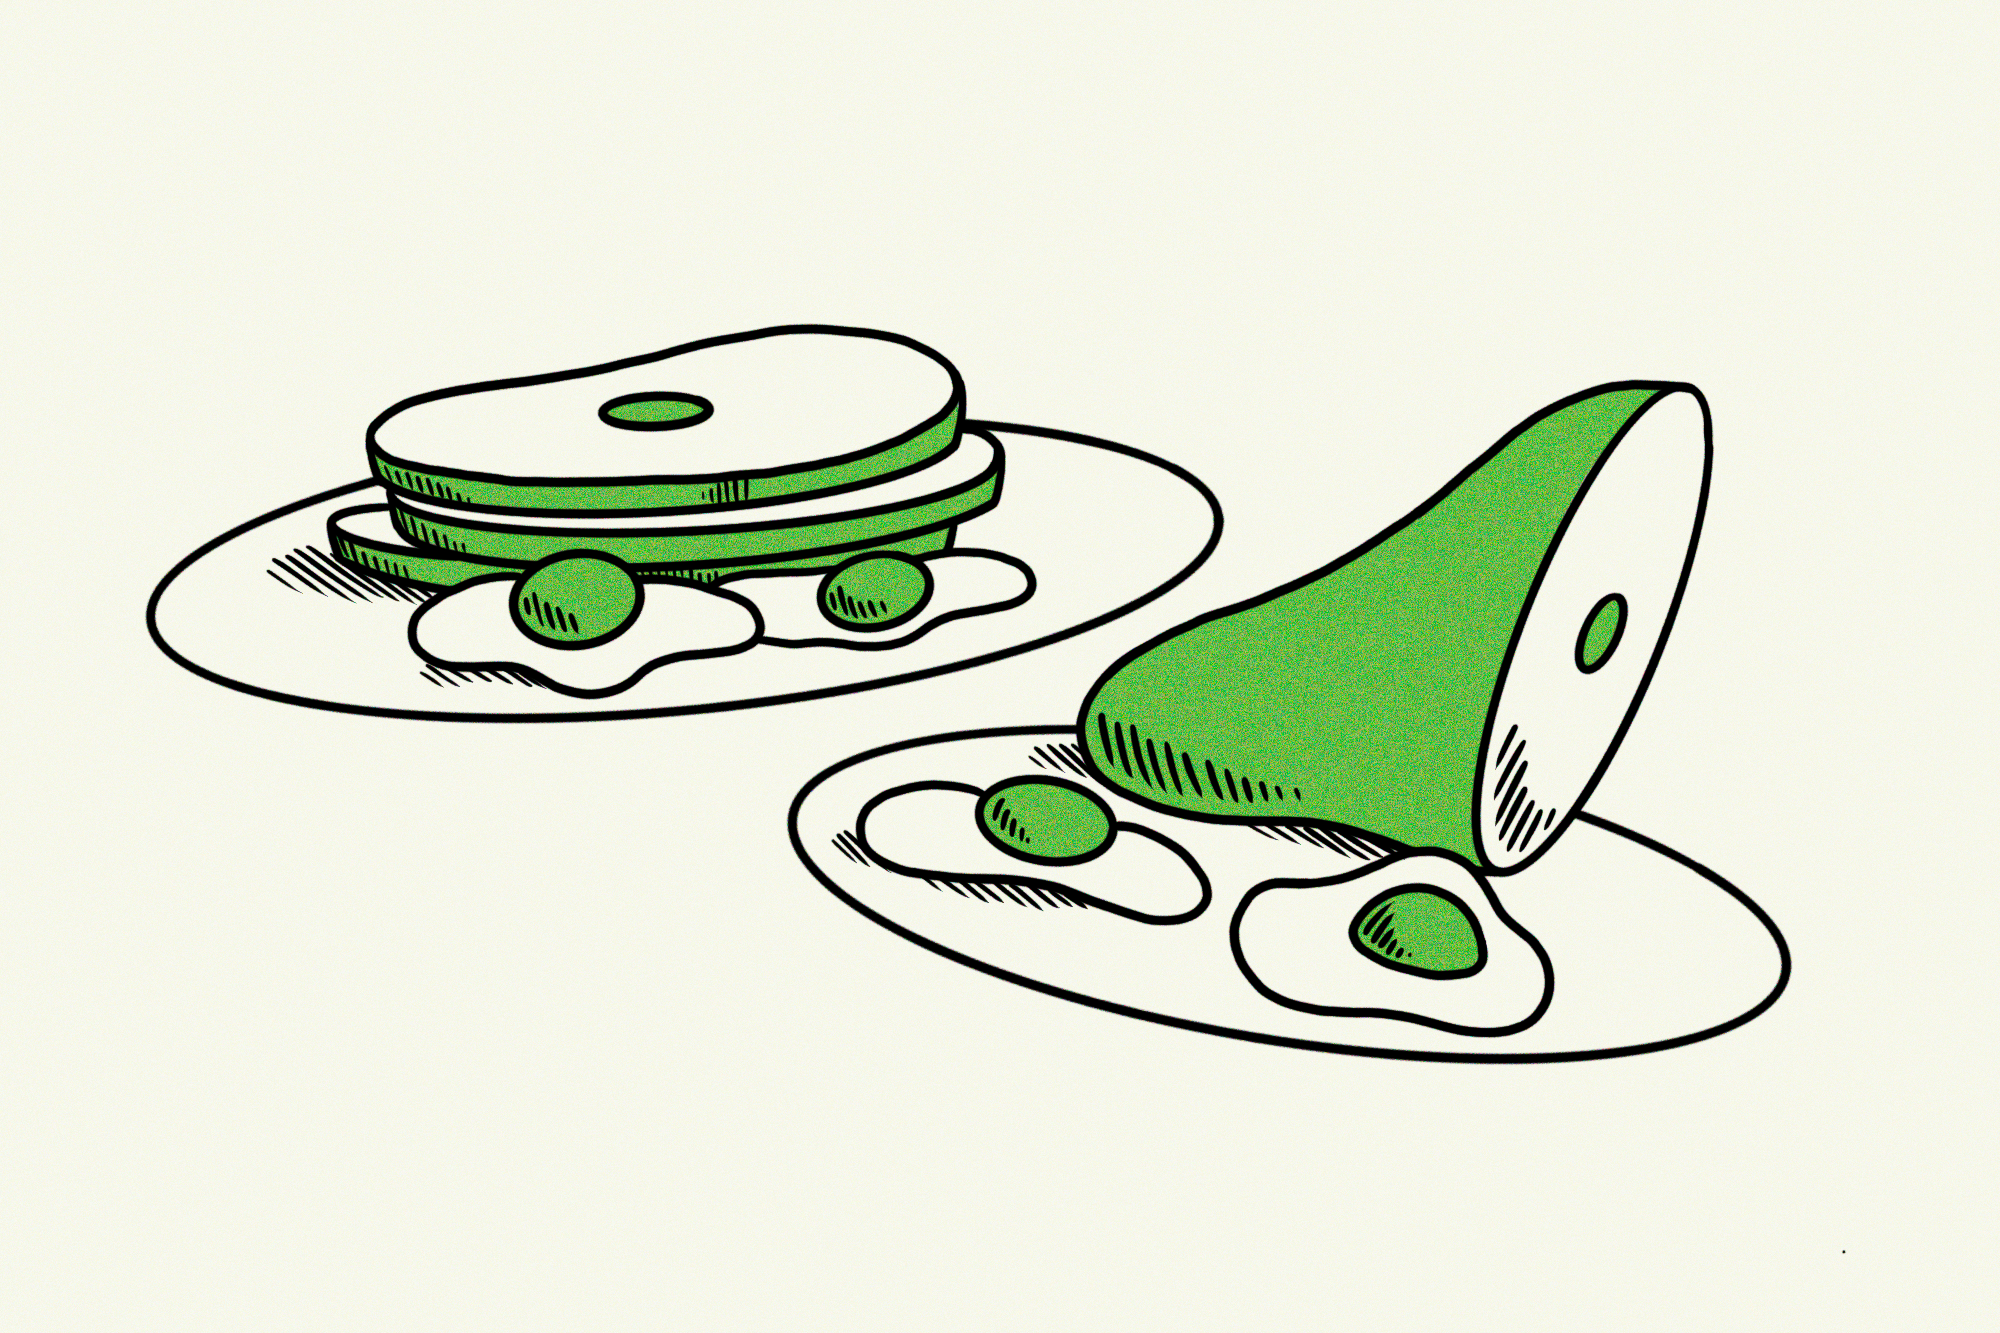 green eggs and ham on plates